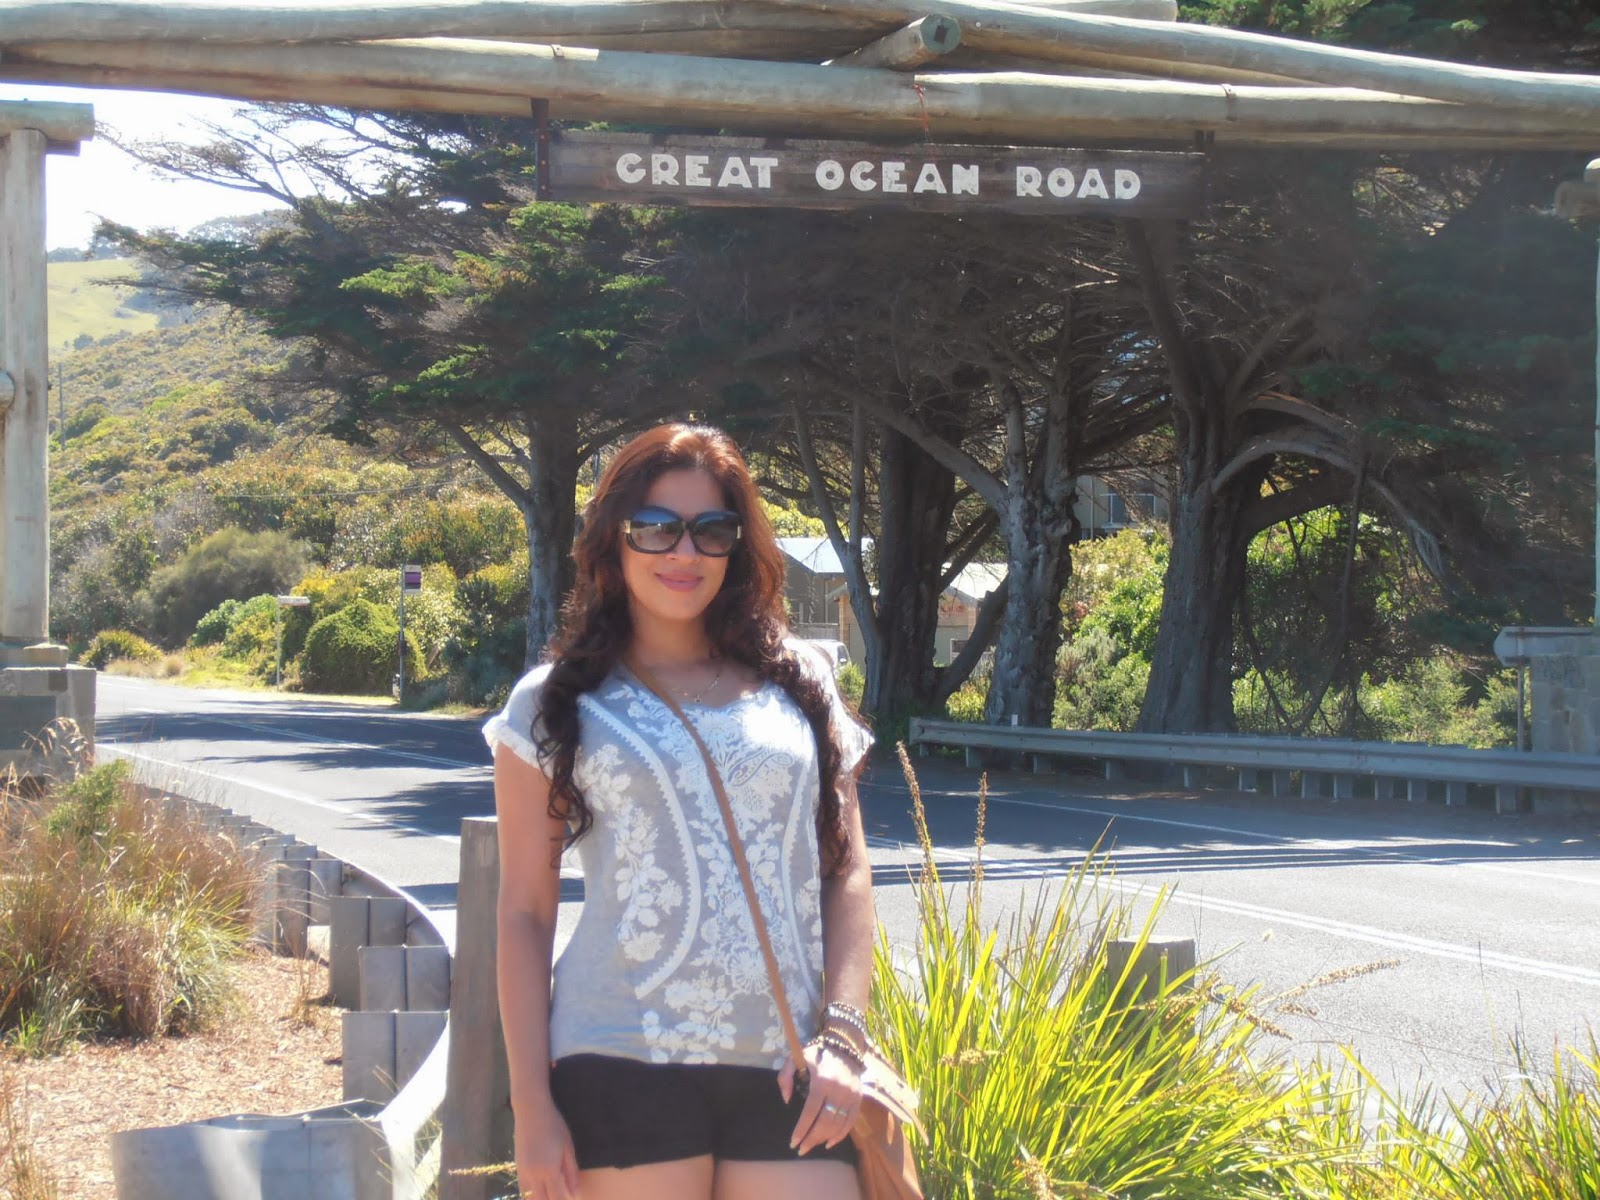 Anusha Rajapaksha at Great ocean road